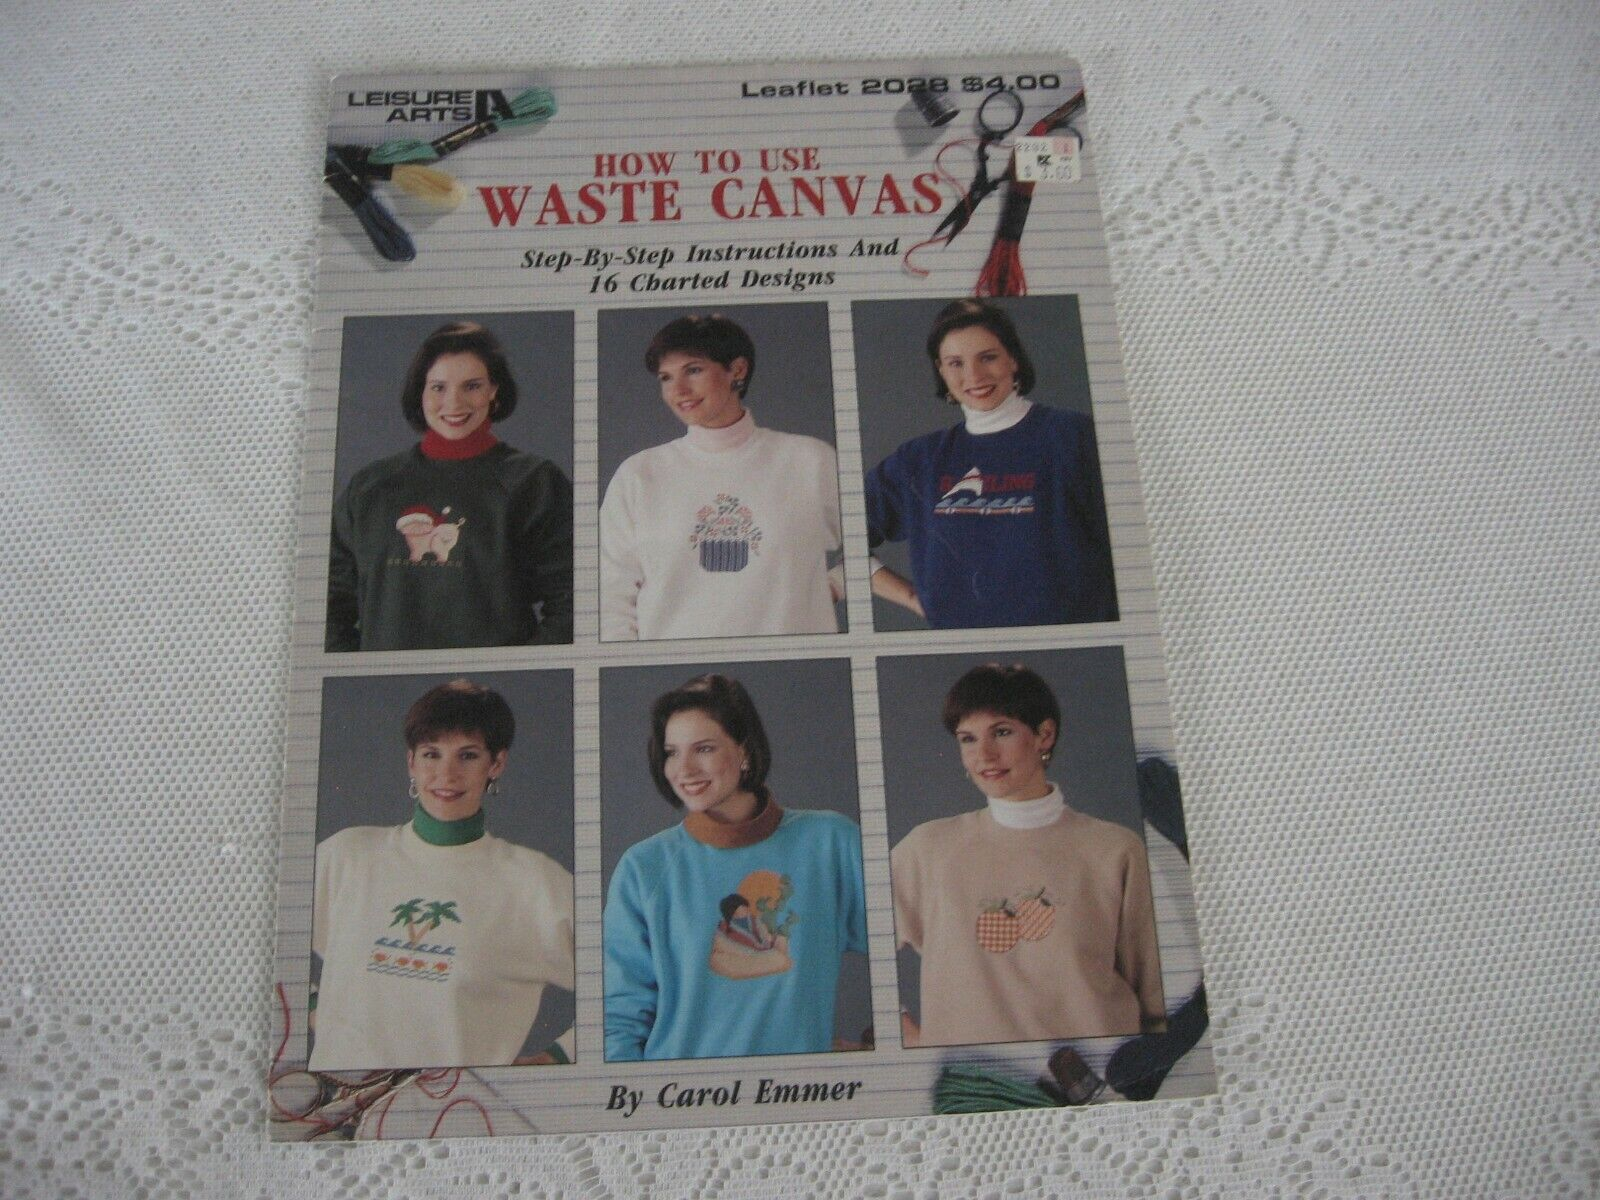 How To Use Waste Canvas By Leisure Arts 1991 - Leaflet 2028  - $2.75